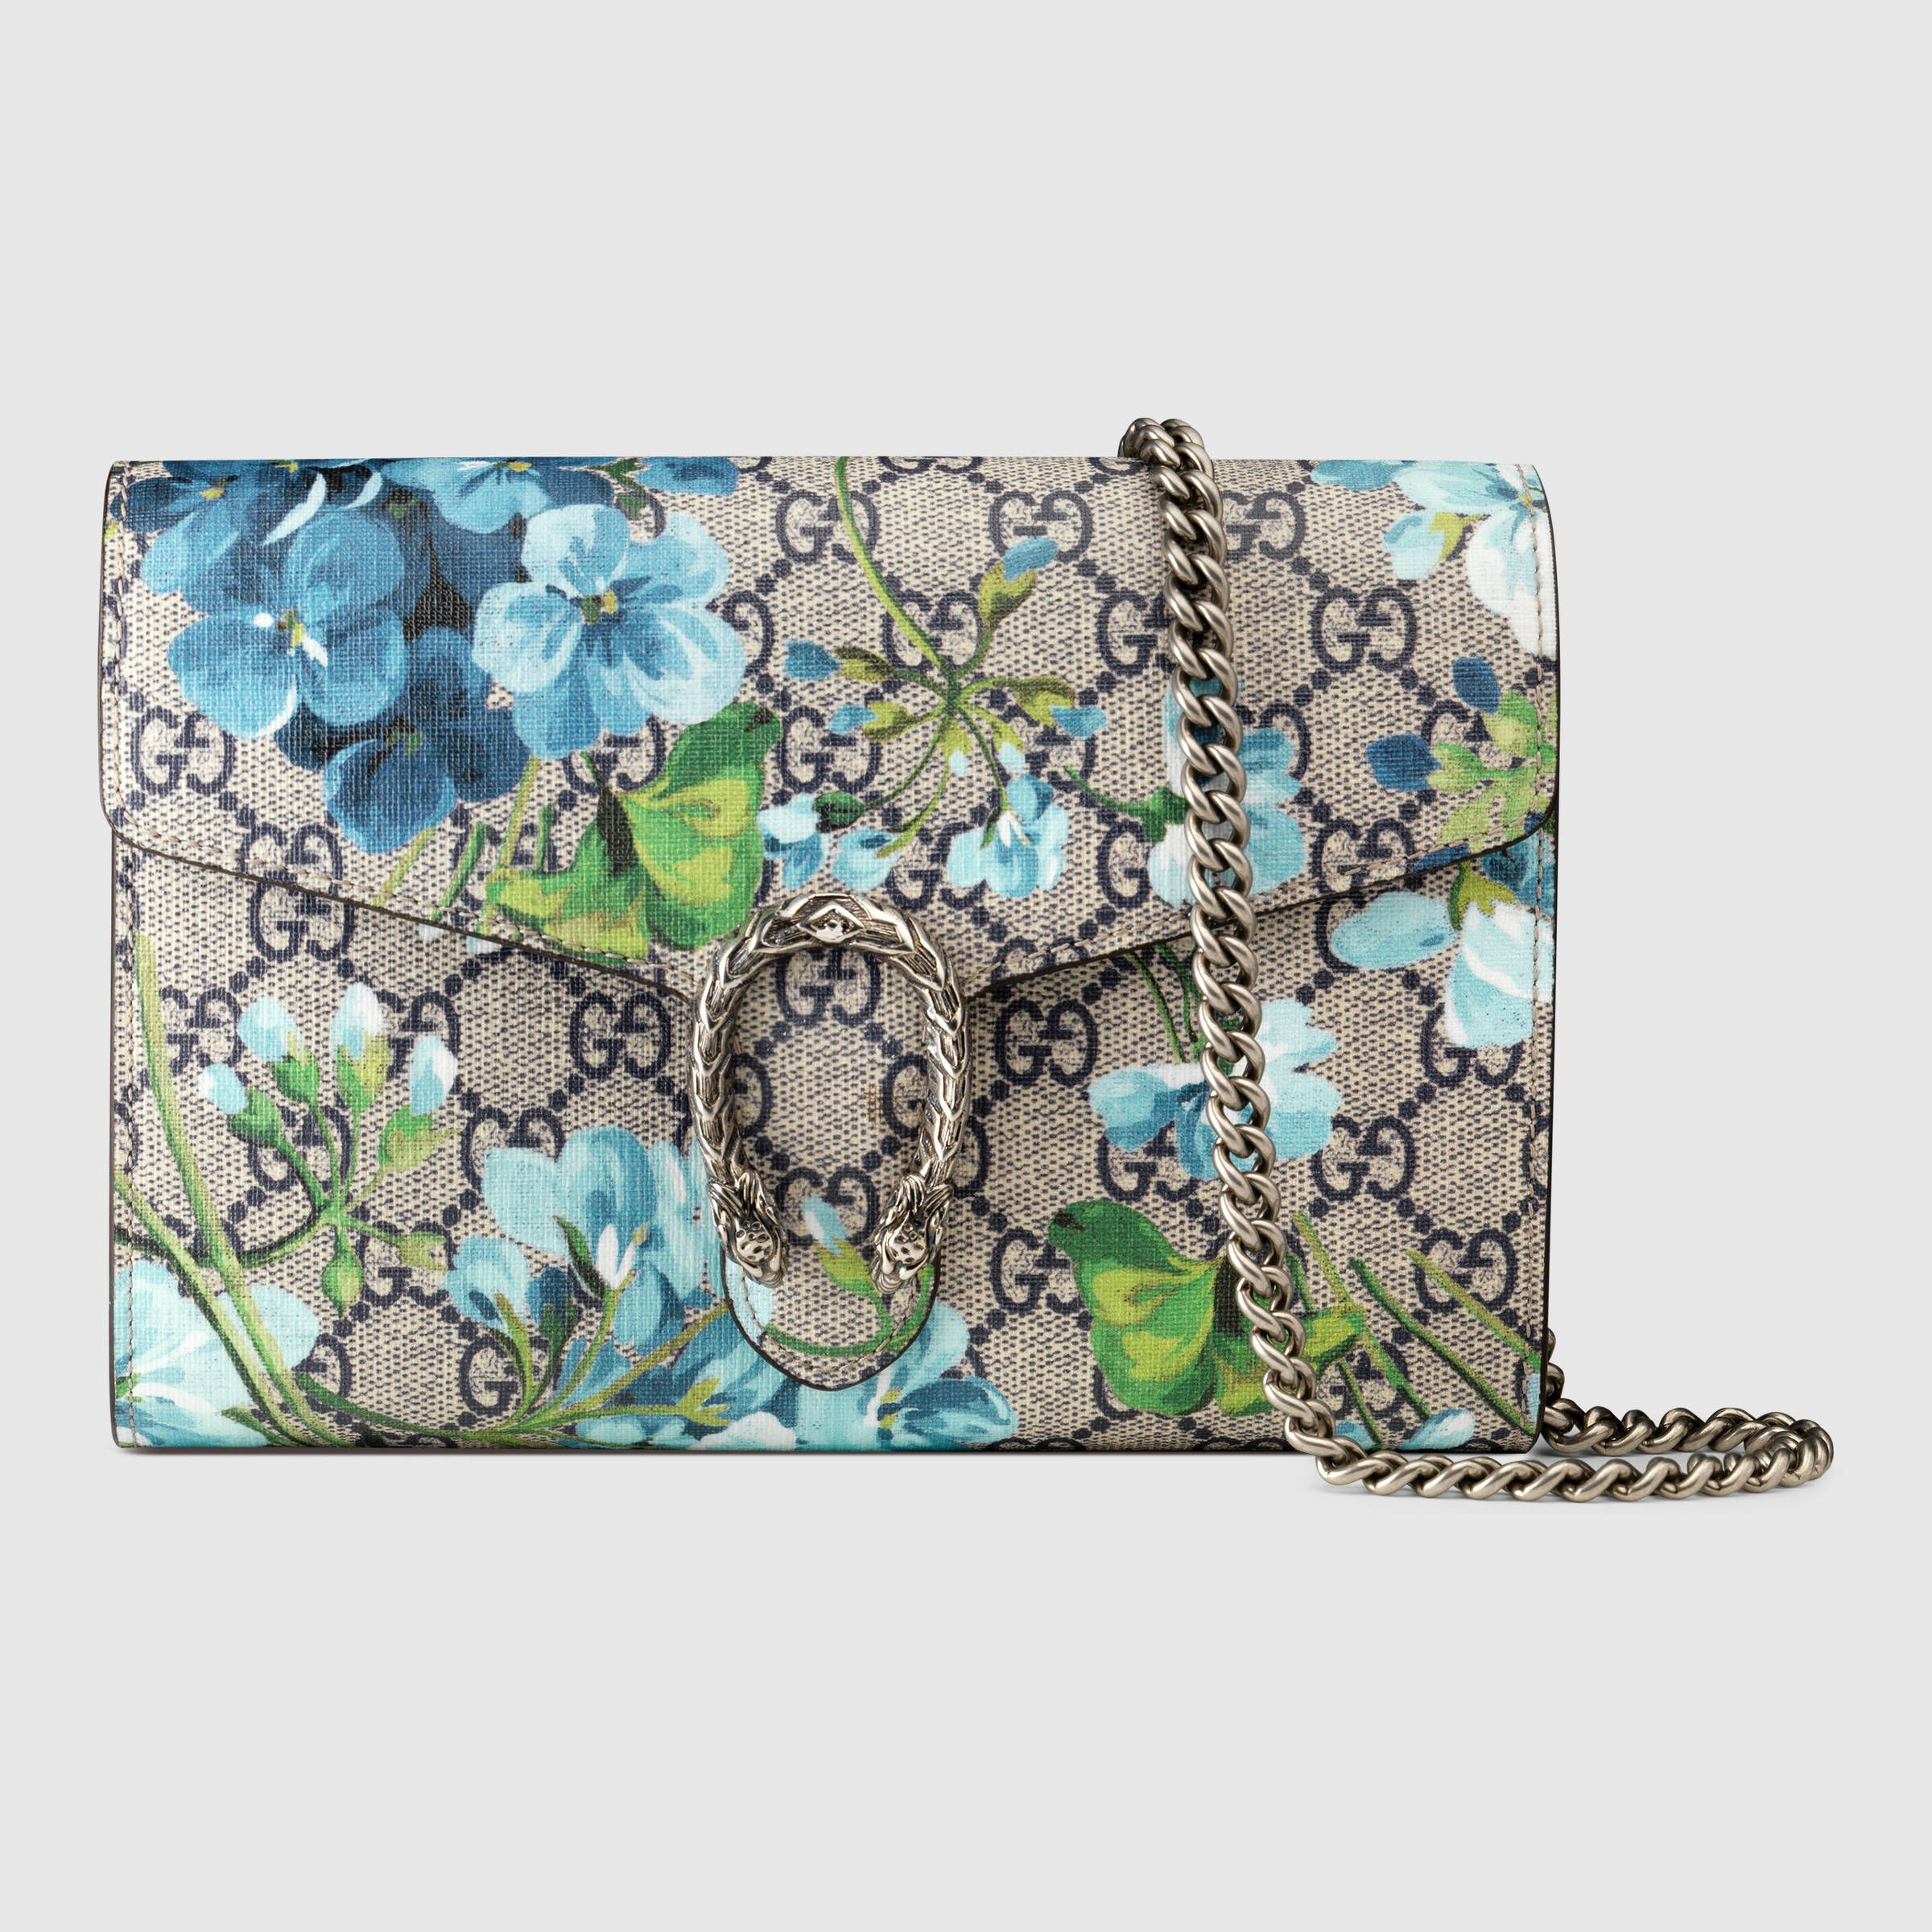 Gucci Women - Dionysus Blooms print mini chain bag - 401231KU2AN8487 ... b2715c0d7f4cd